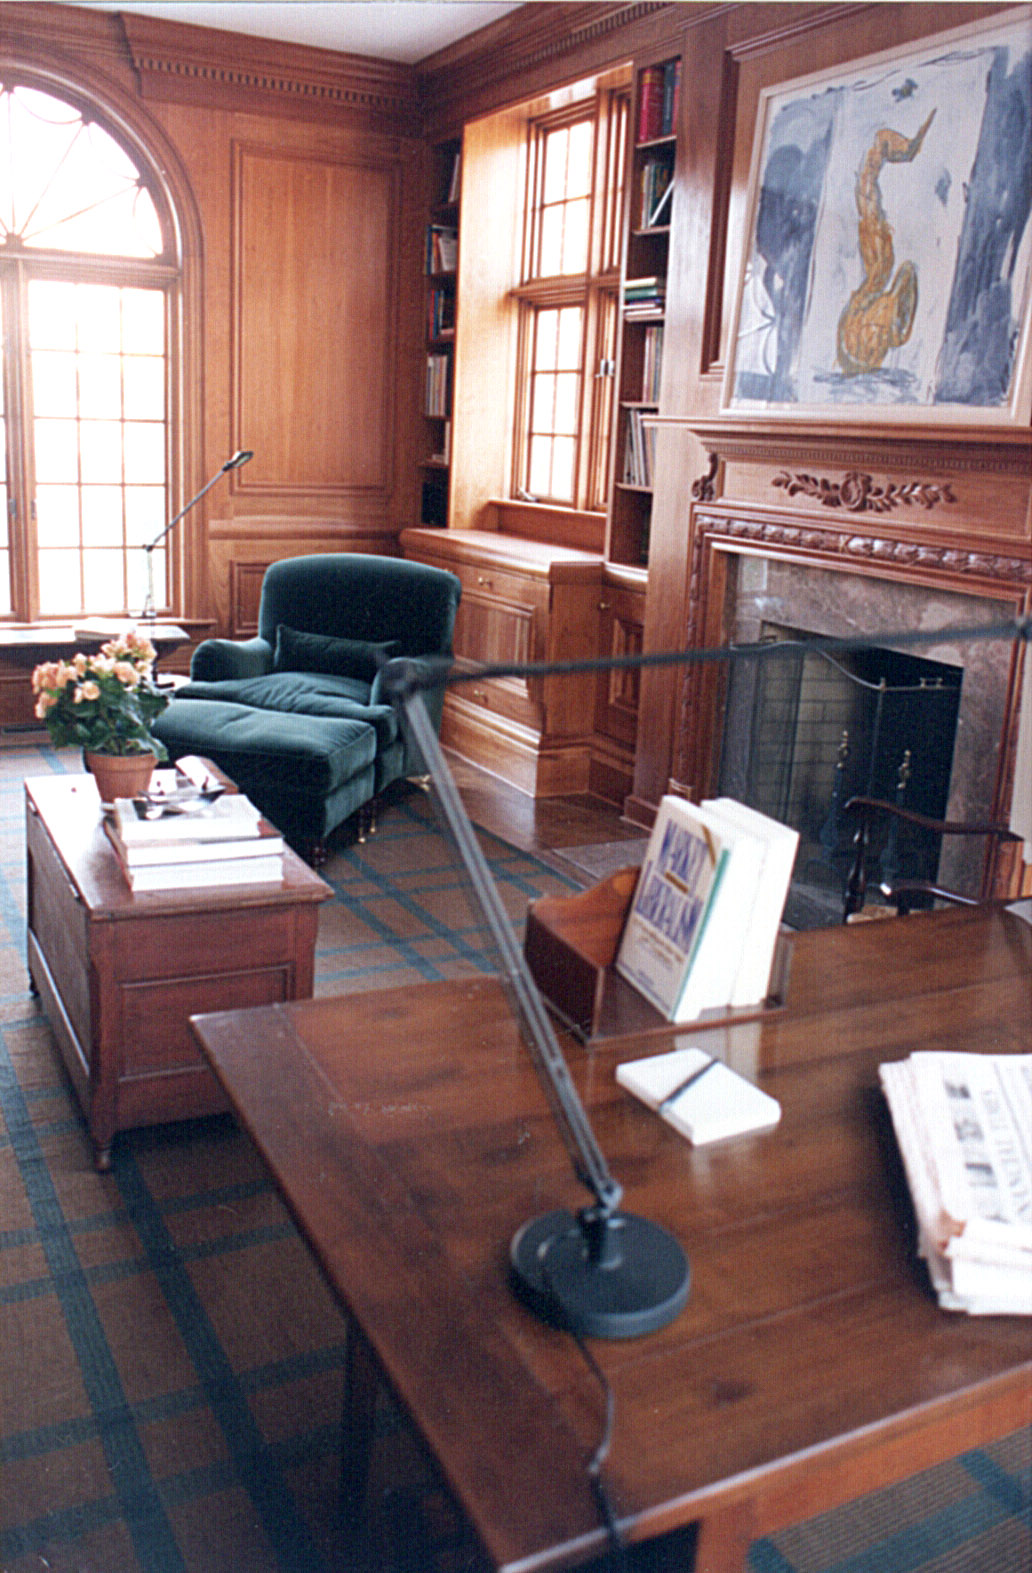 jane-mitchell-desk.jpg